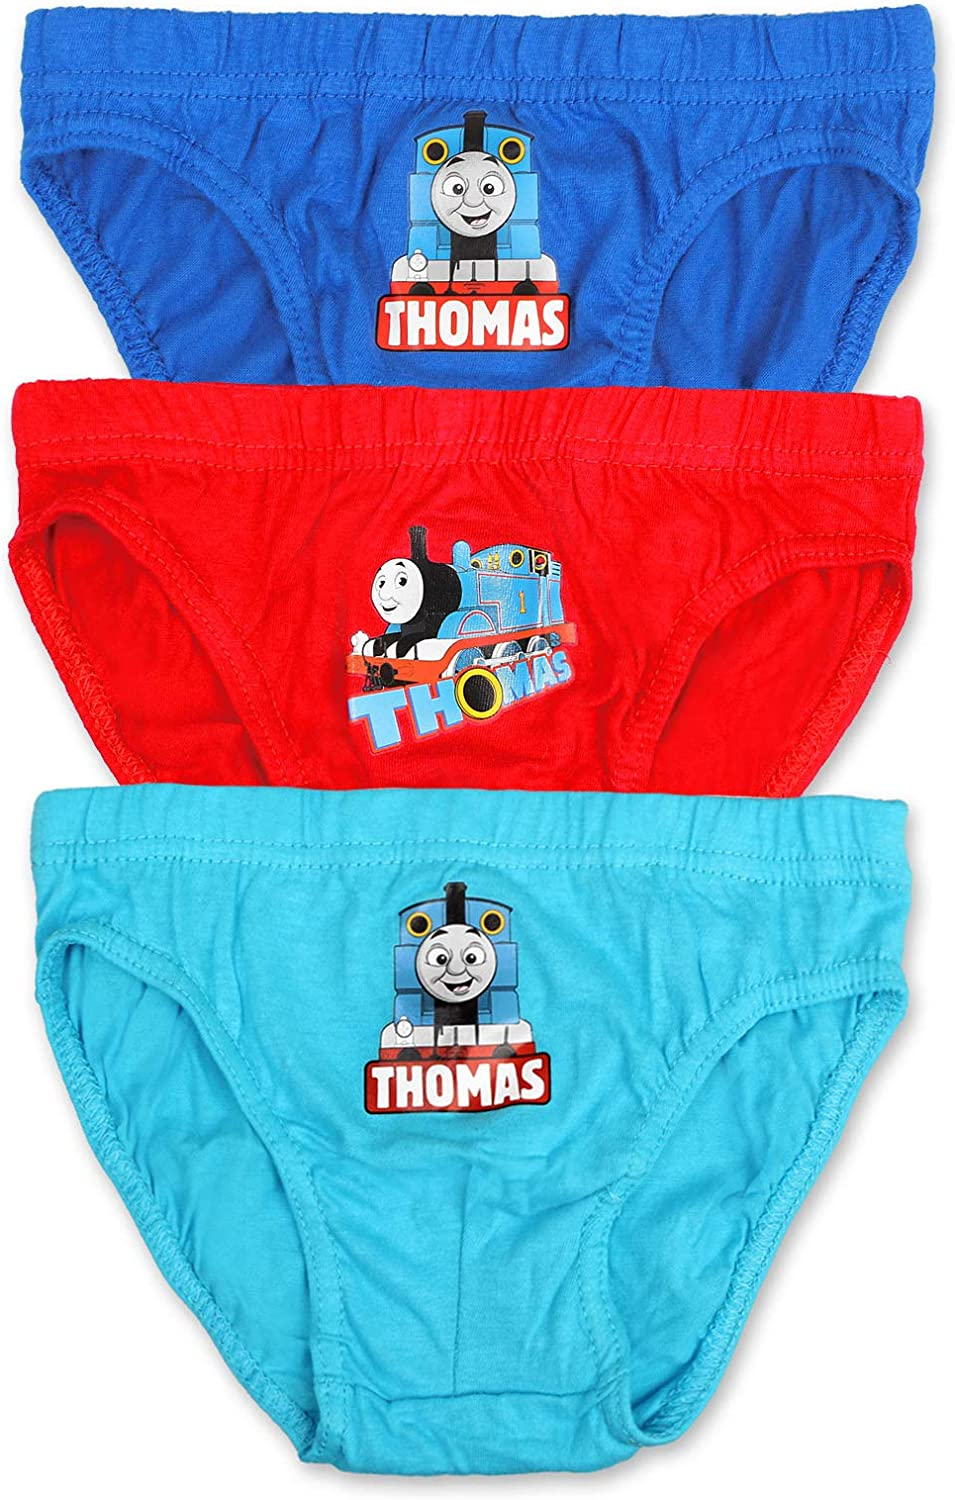 Boys Thomas Briefs Pants Underpants Underwear Slips - 3 Pack - Official  Licenced 100% Cotton (4-5 Years, Design 7): Amazon.co.uk: Clothing